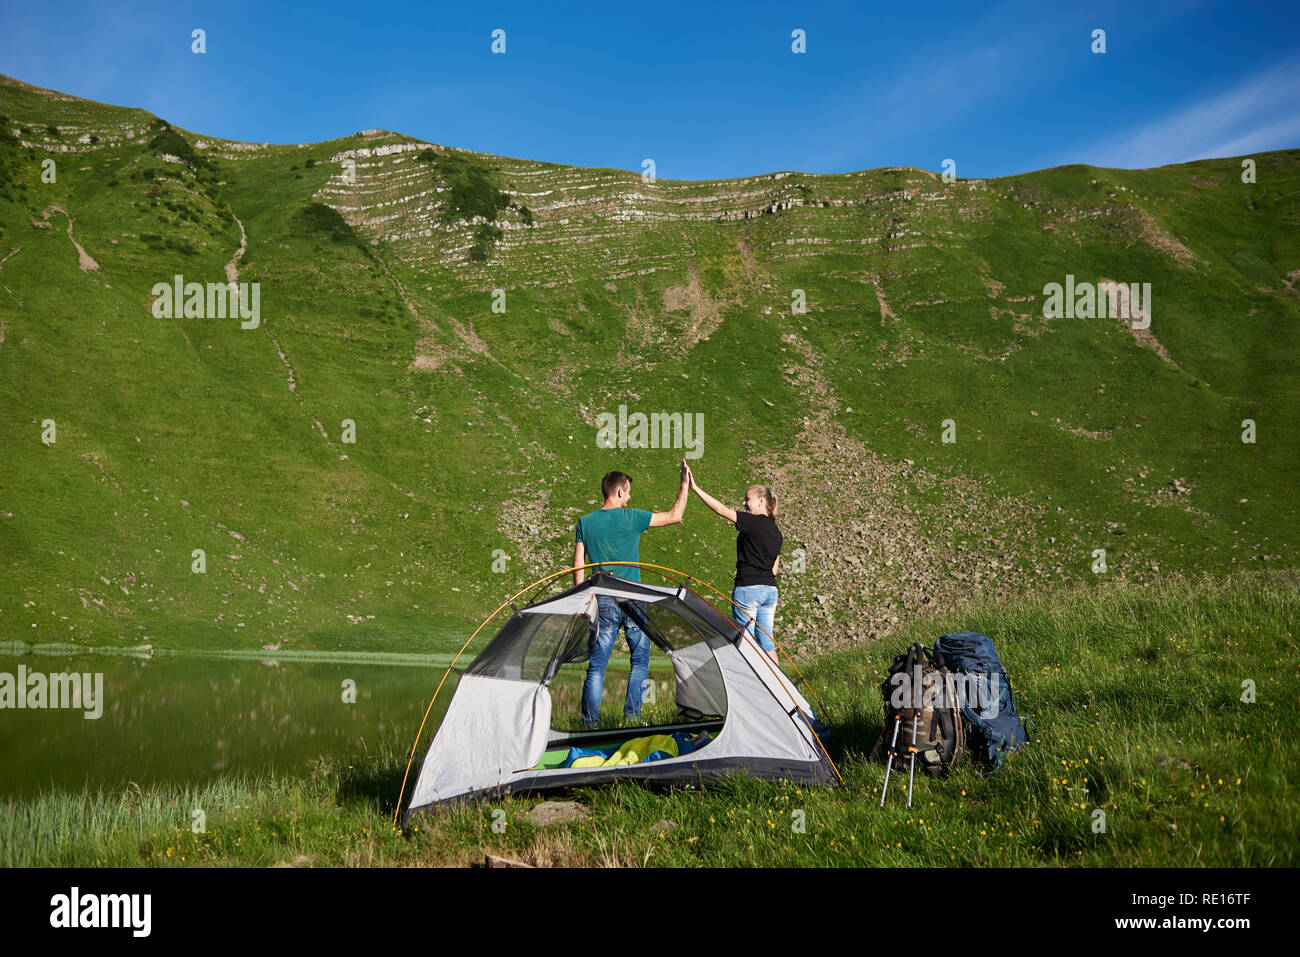 Happy couple giving high five near camping with a tent, backpacks and trekking sticks, against at mighty green mountain at the foot of which is a lake under a blue sky - Stock Image